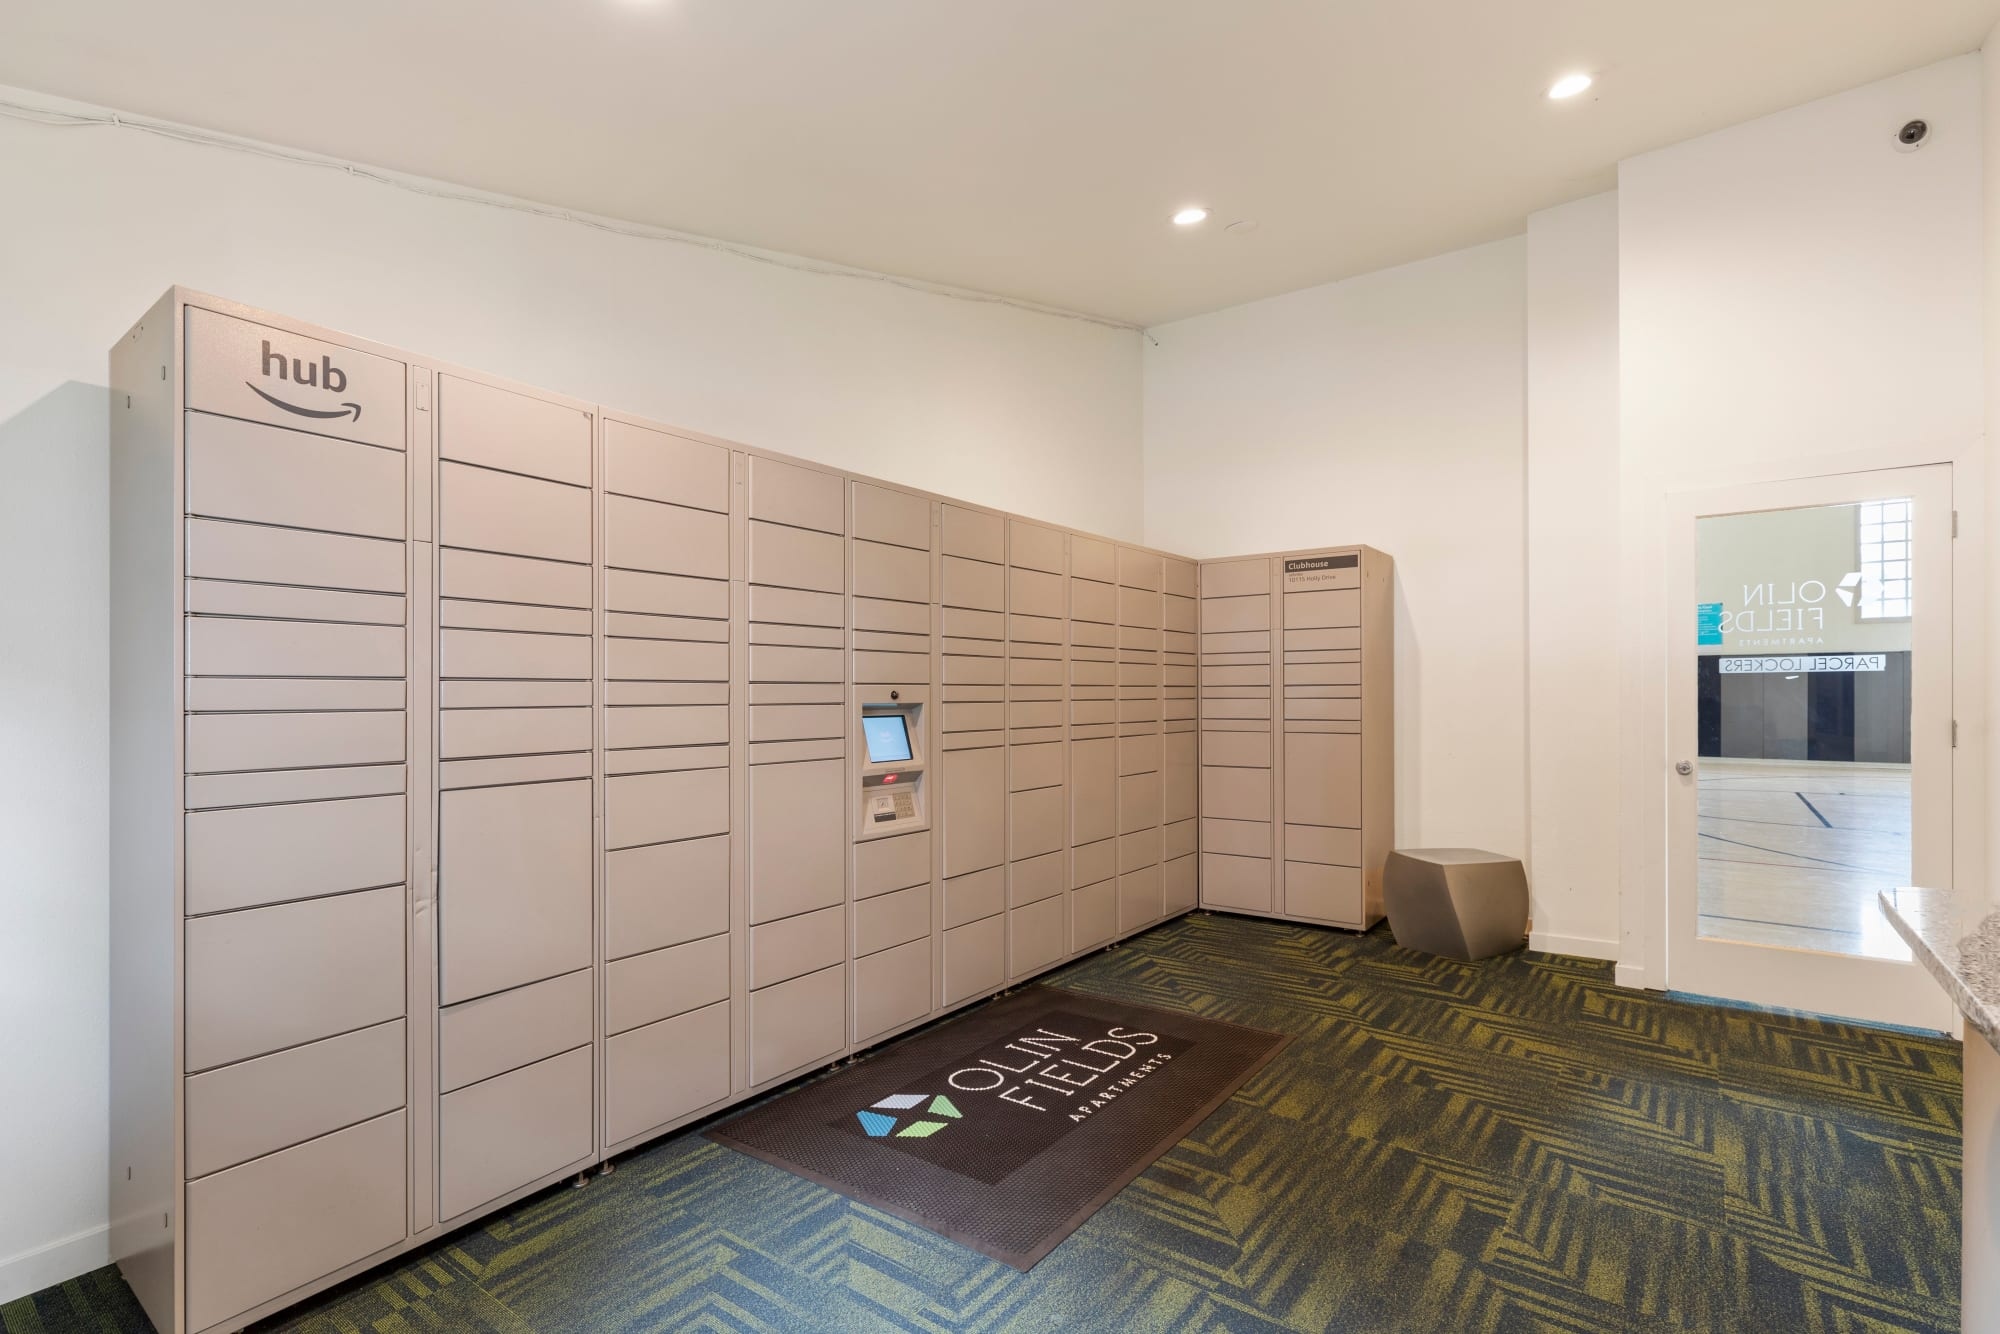 24-Hour package lockers of Olin Fields Apartments